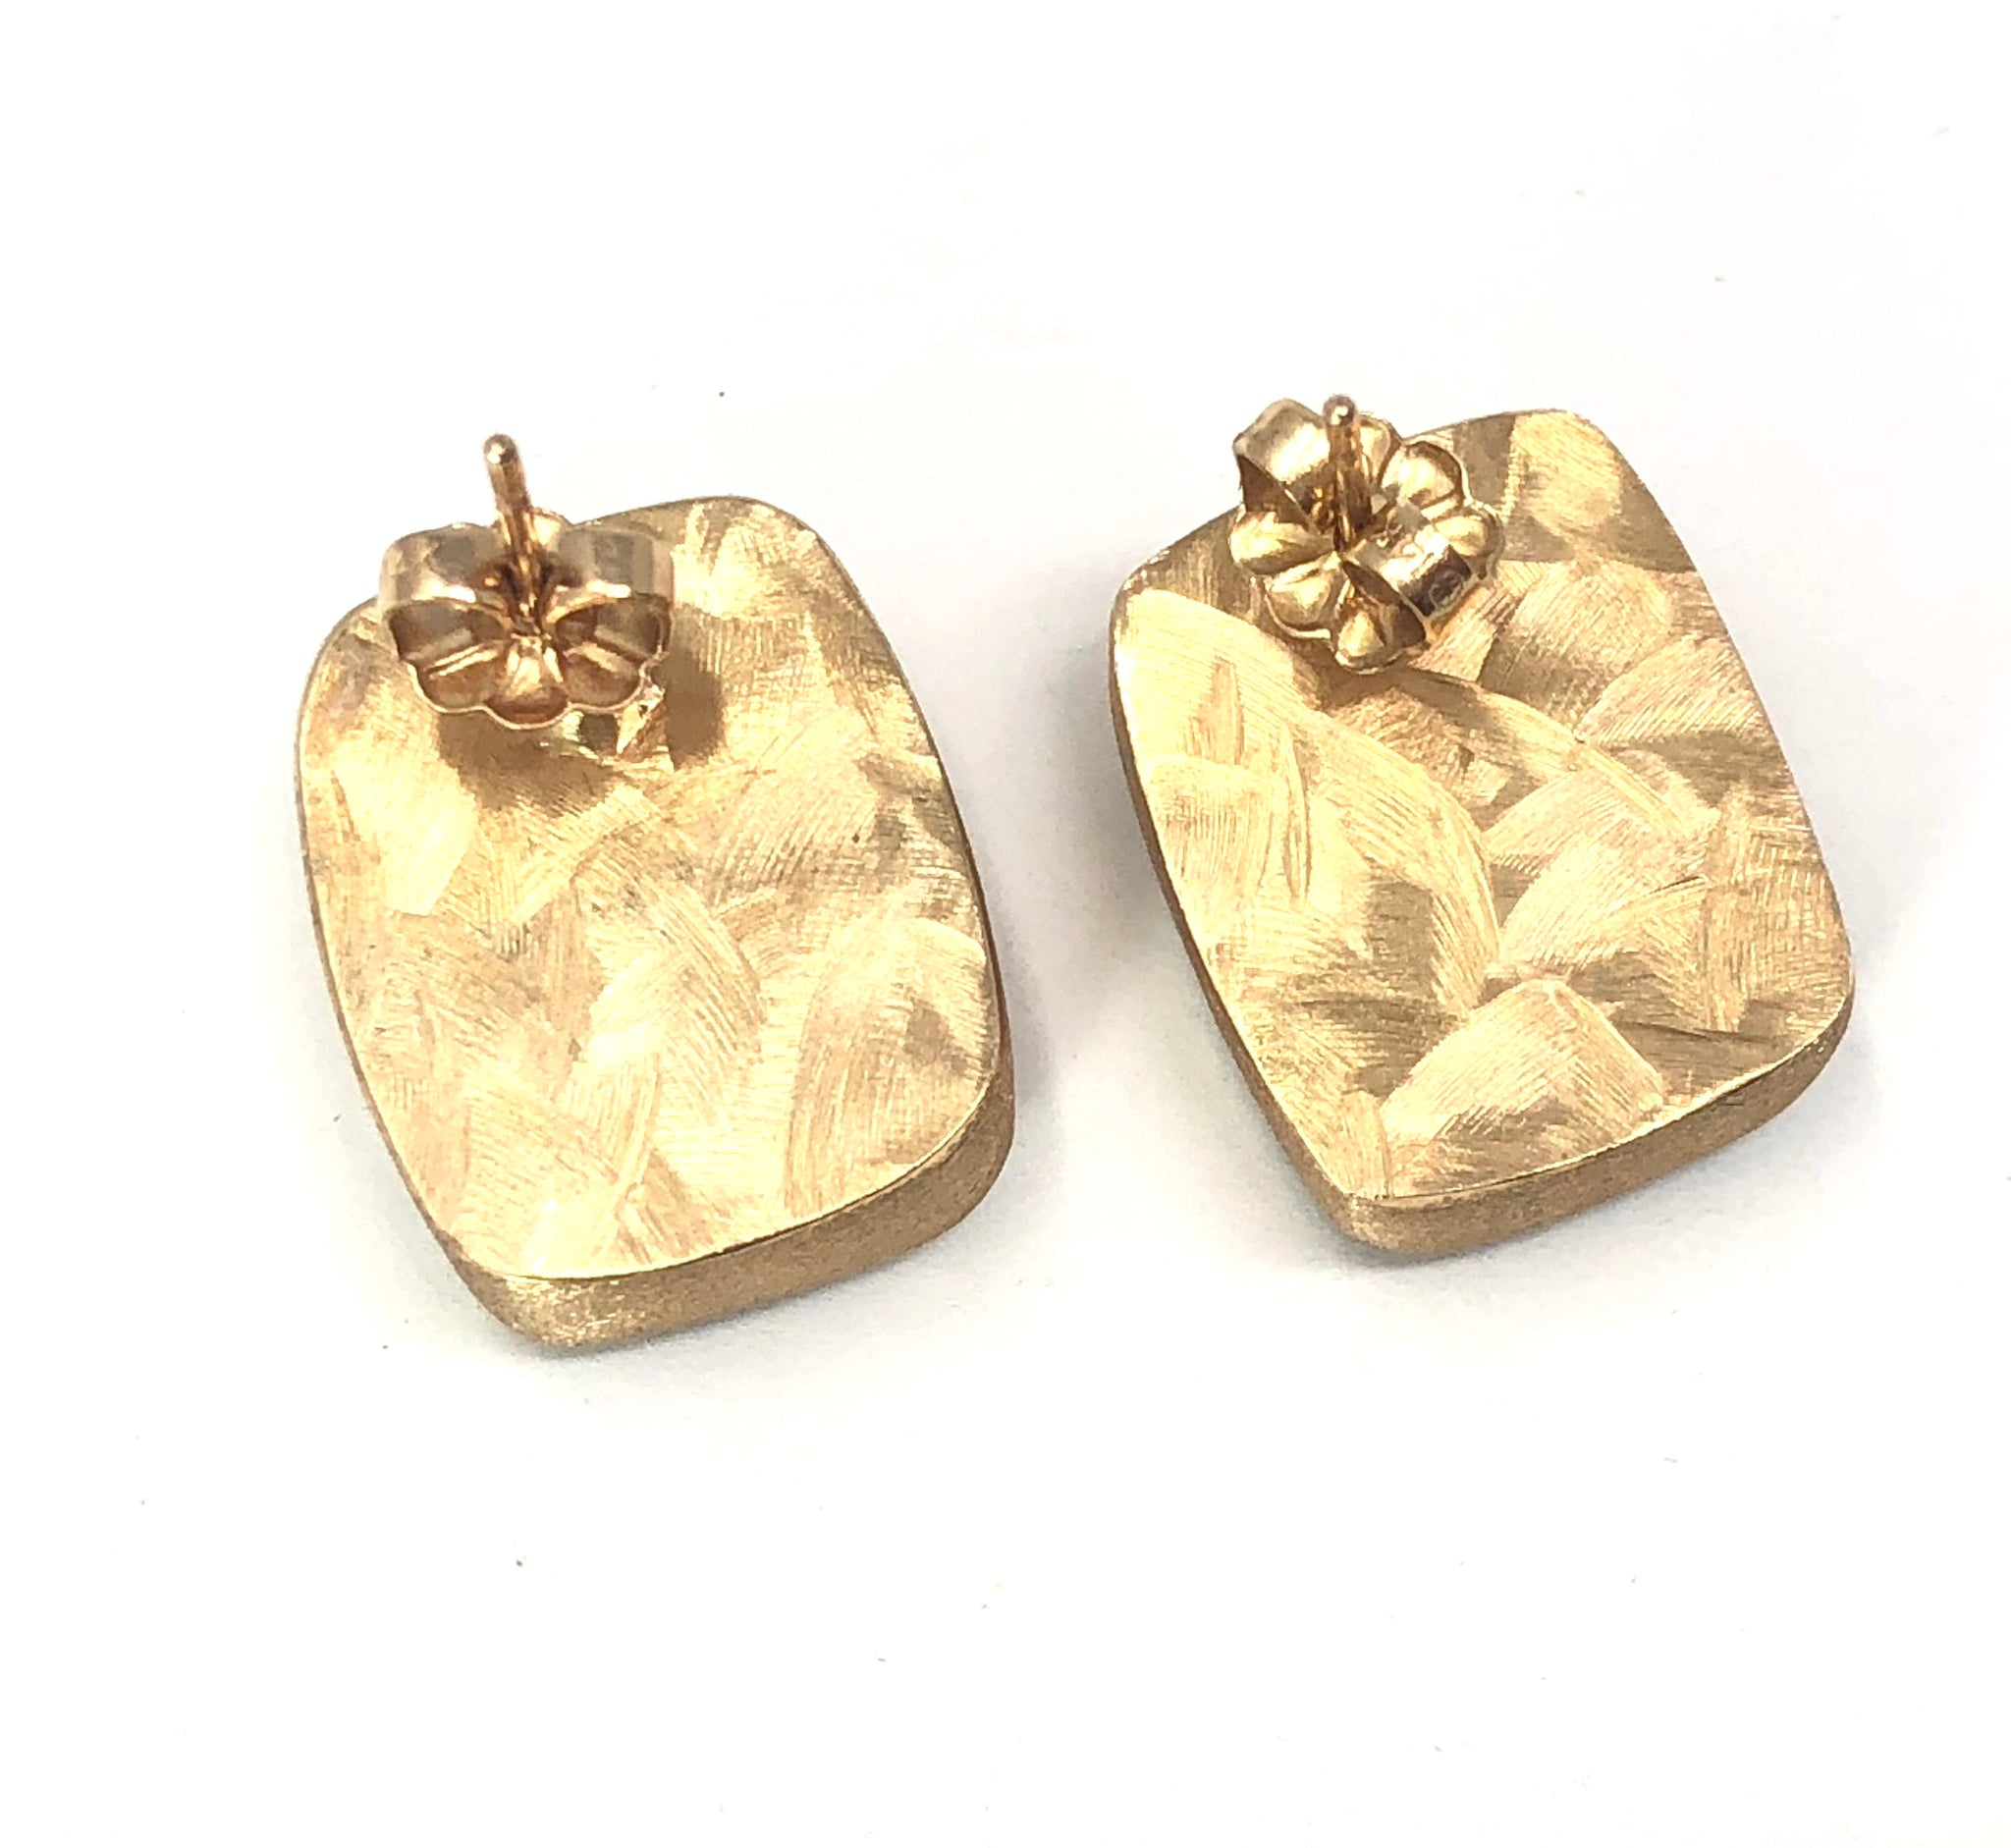 2410cf0f2 ... Load image into Gallery viewer, 14K Yellow Gold and Onyx Inlay  Rectangular Earrings